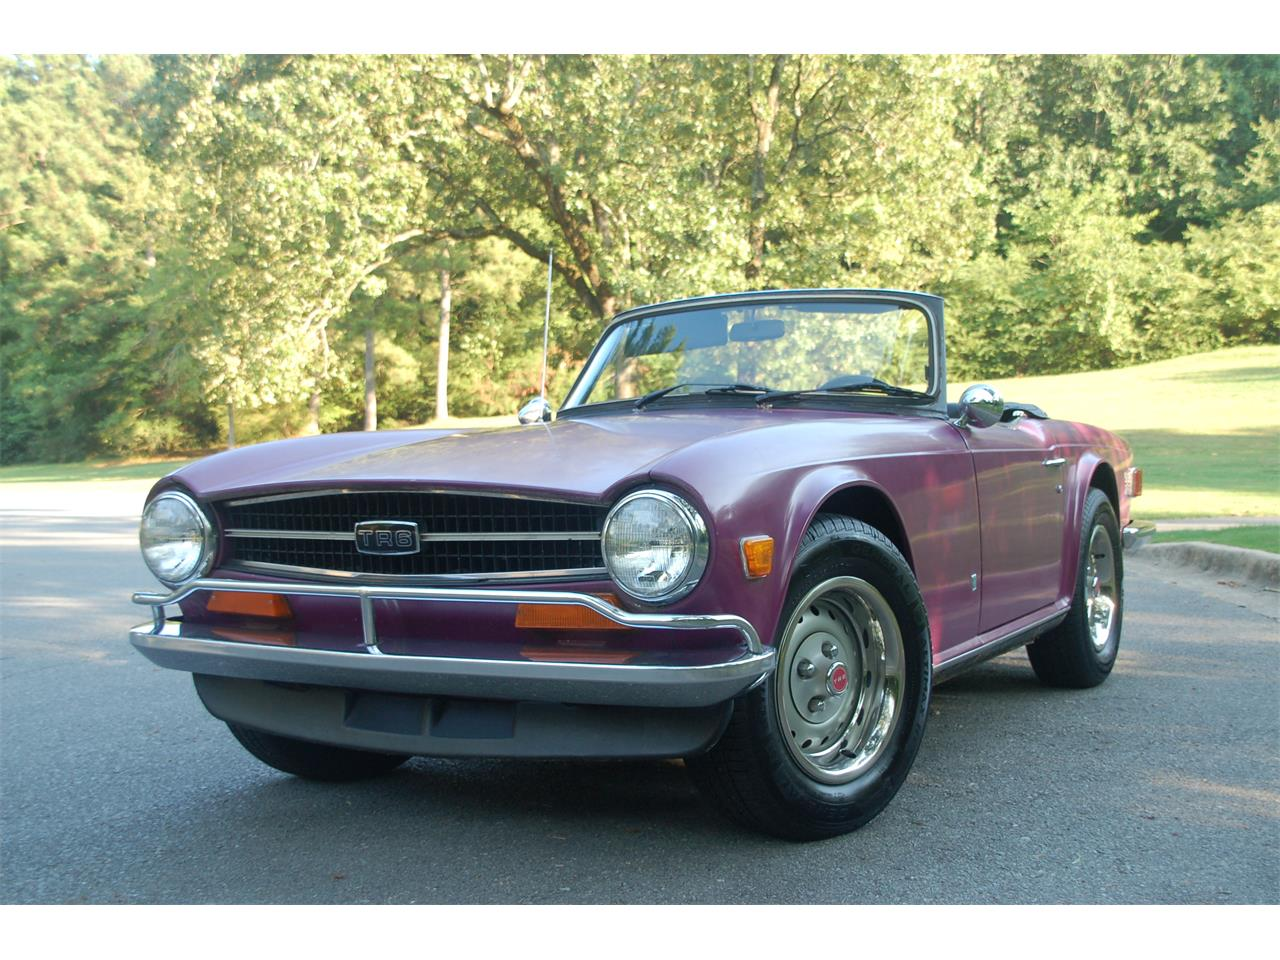 1973 Triumph TR6 for sale in Little Rock, AR